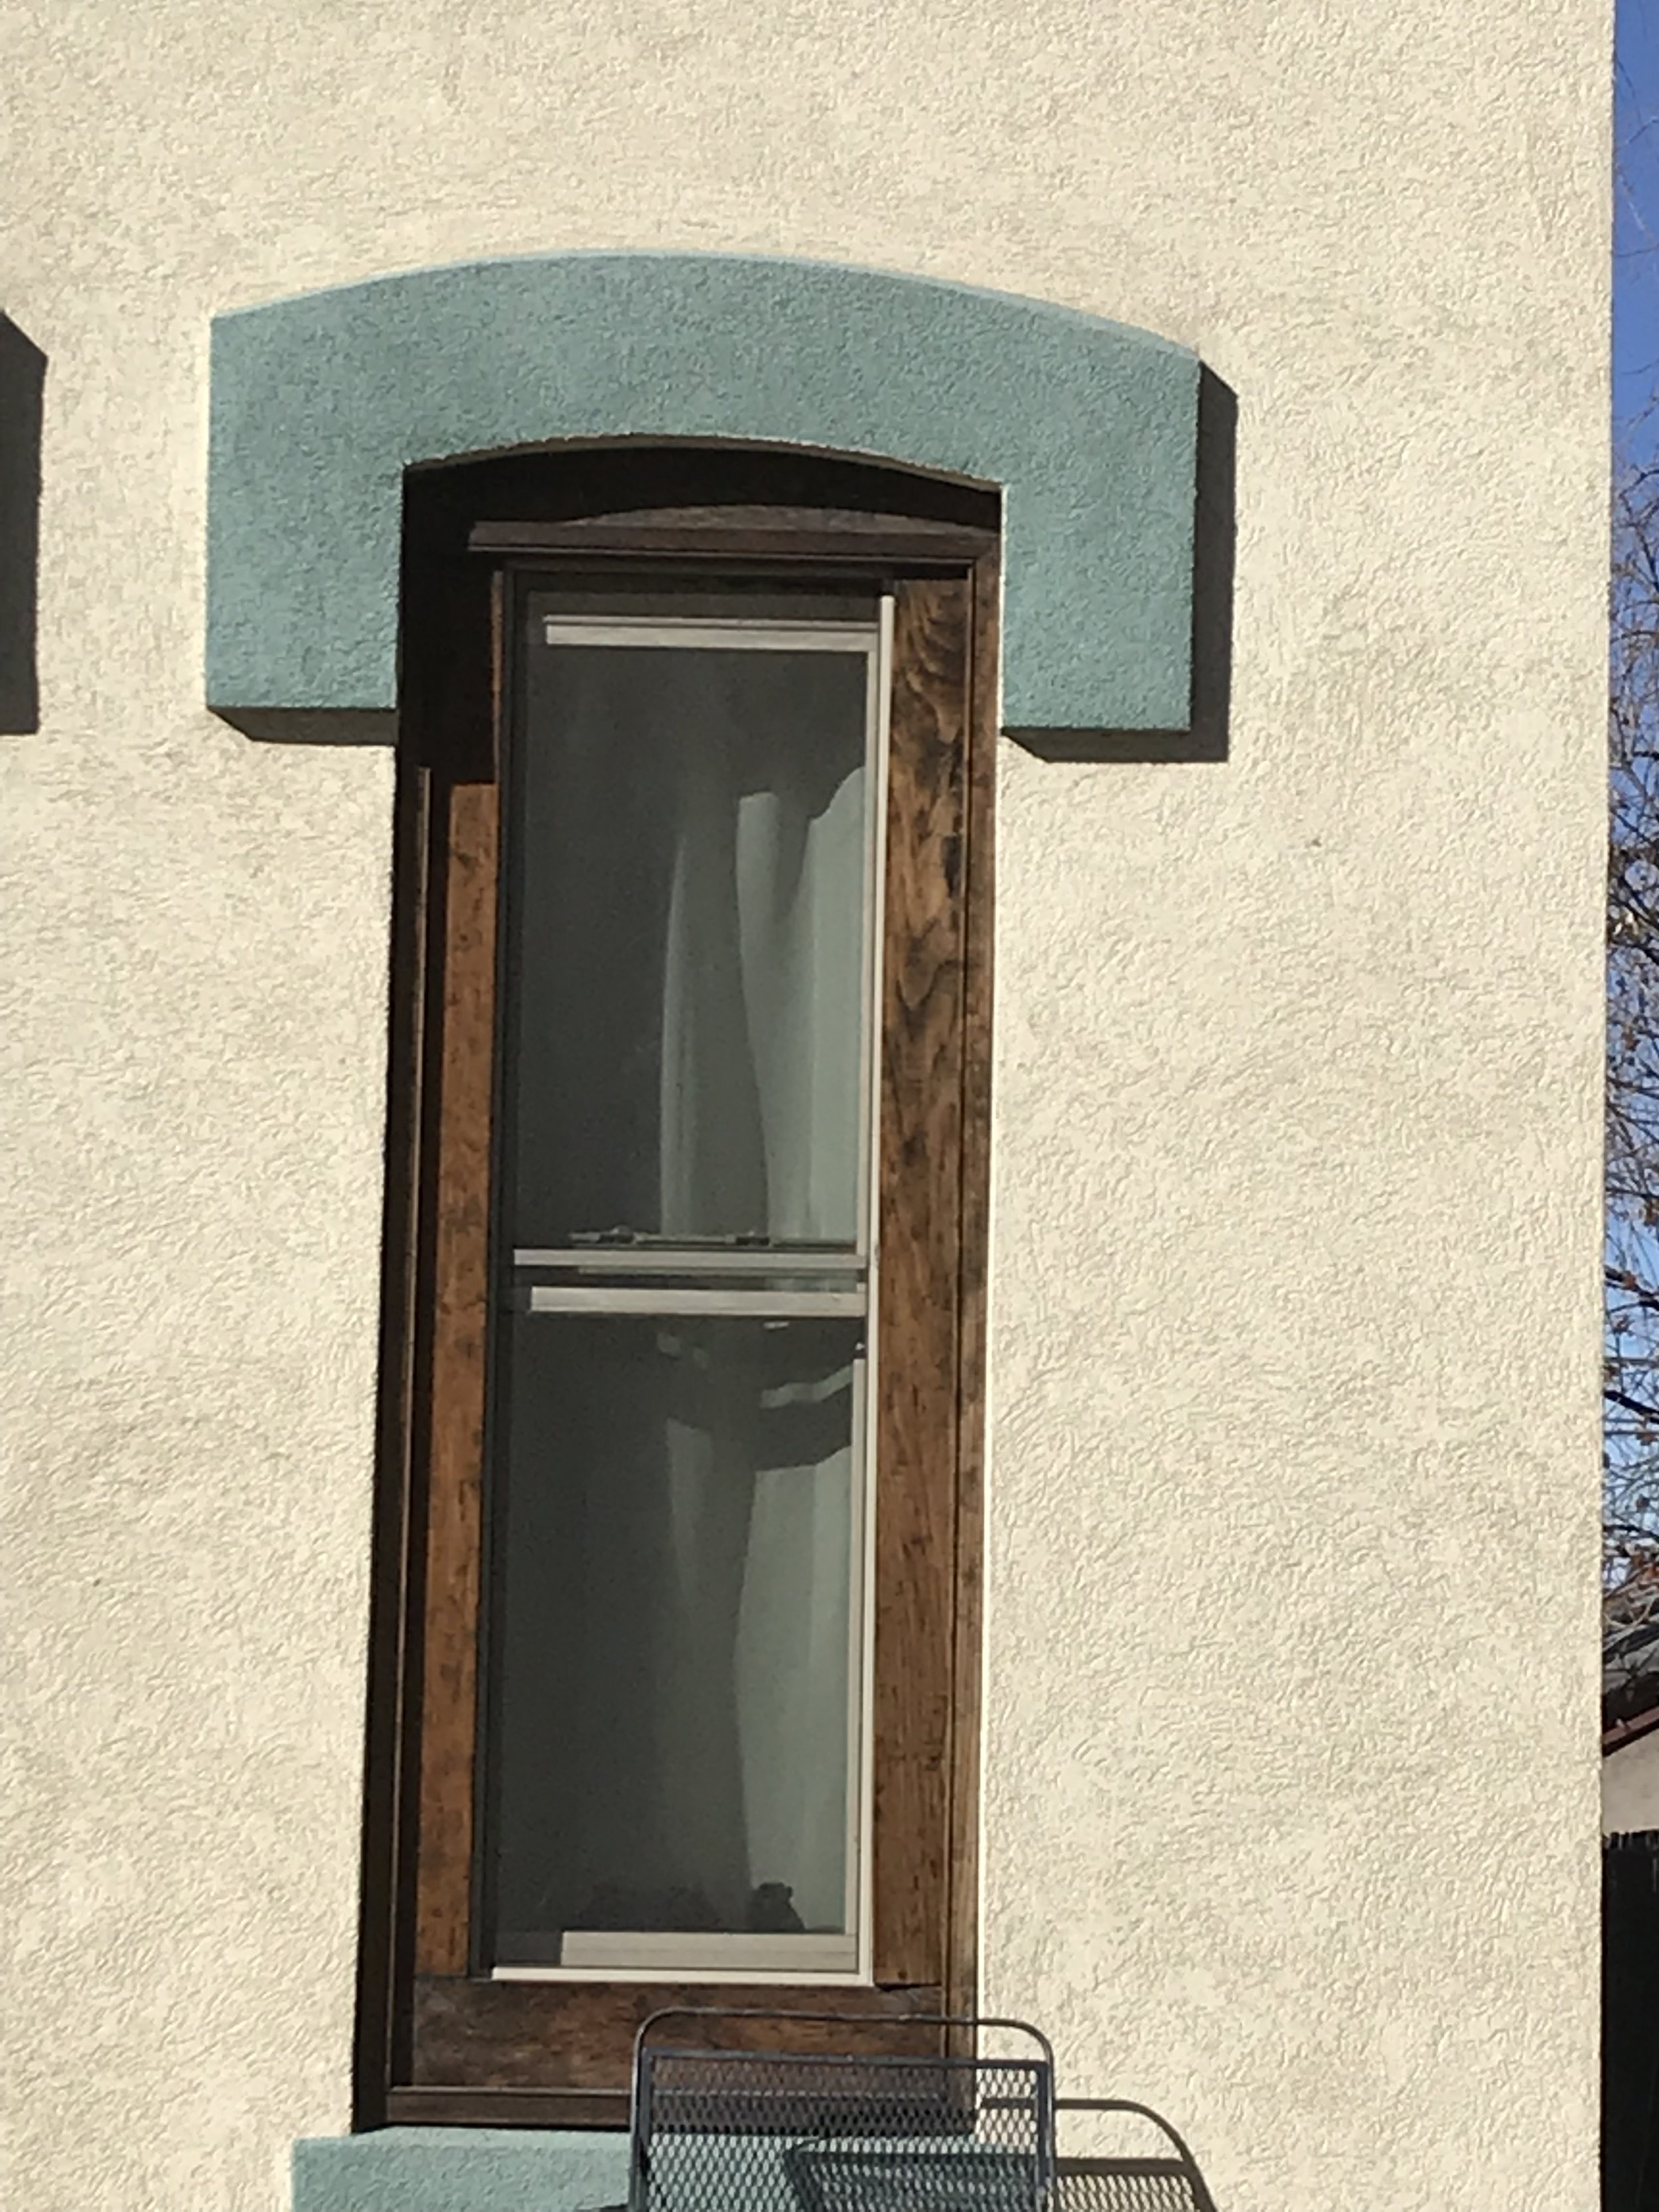 Replacement windows that are downsized from the original opening size detract from the building's historic architecture.